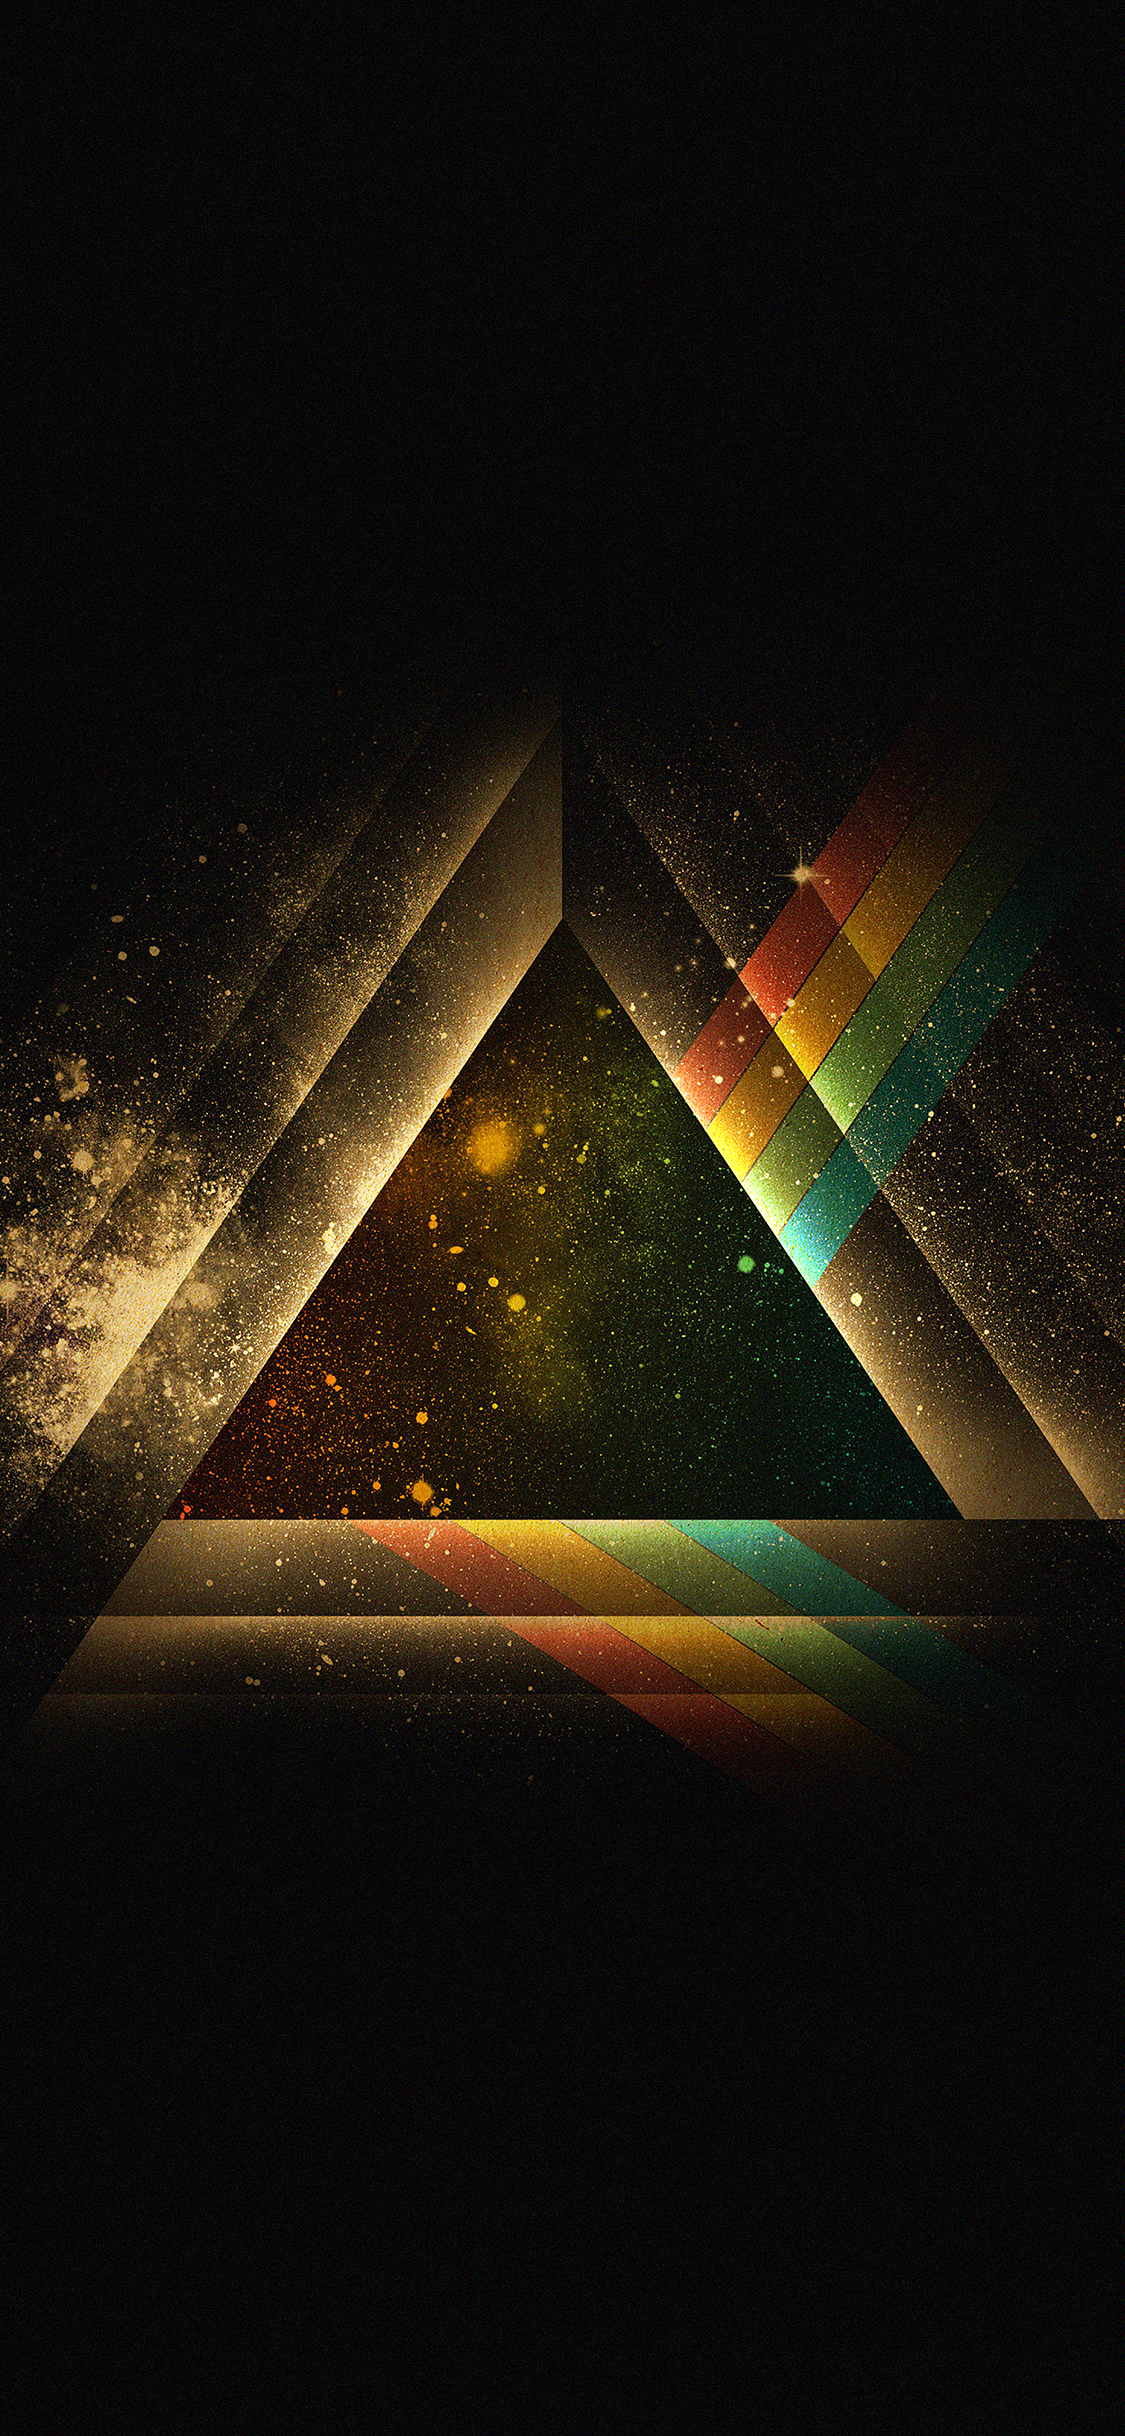 iPhoneXpapers.com-Apple-iPhone-wallpaper-ac07-wallpaper-triangle-art-rainbow-illust-graphic